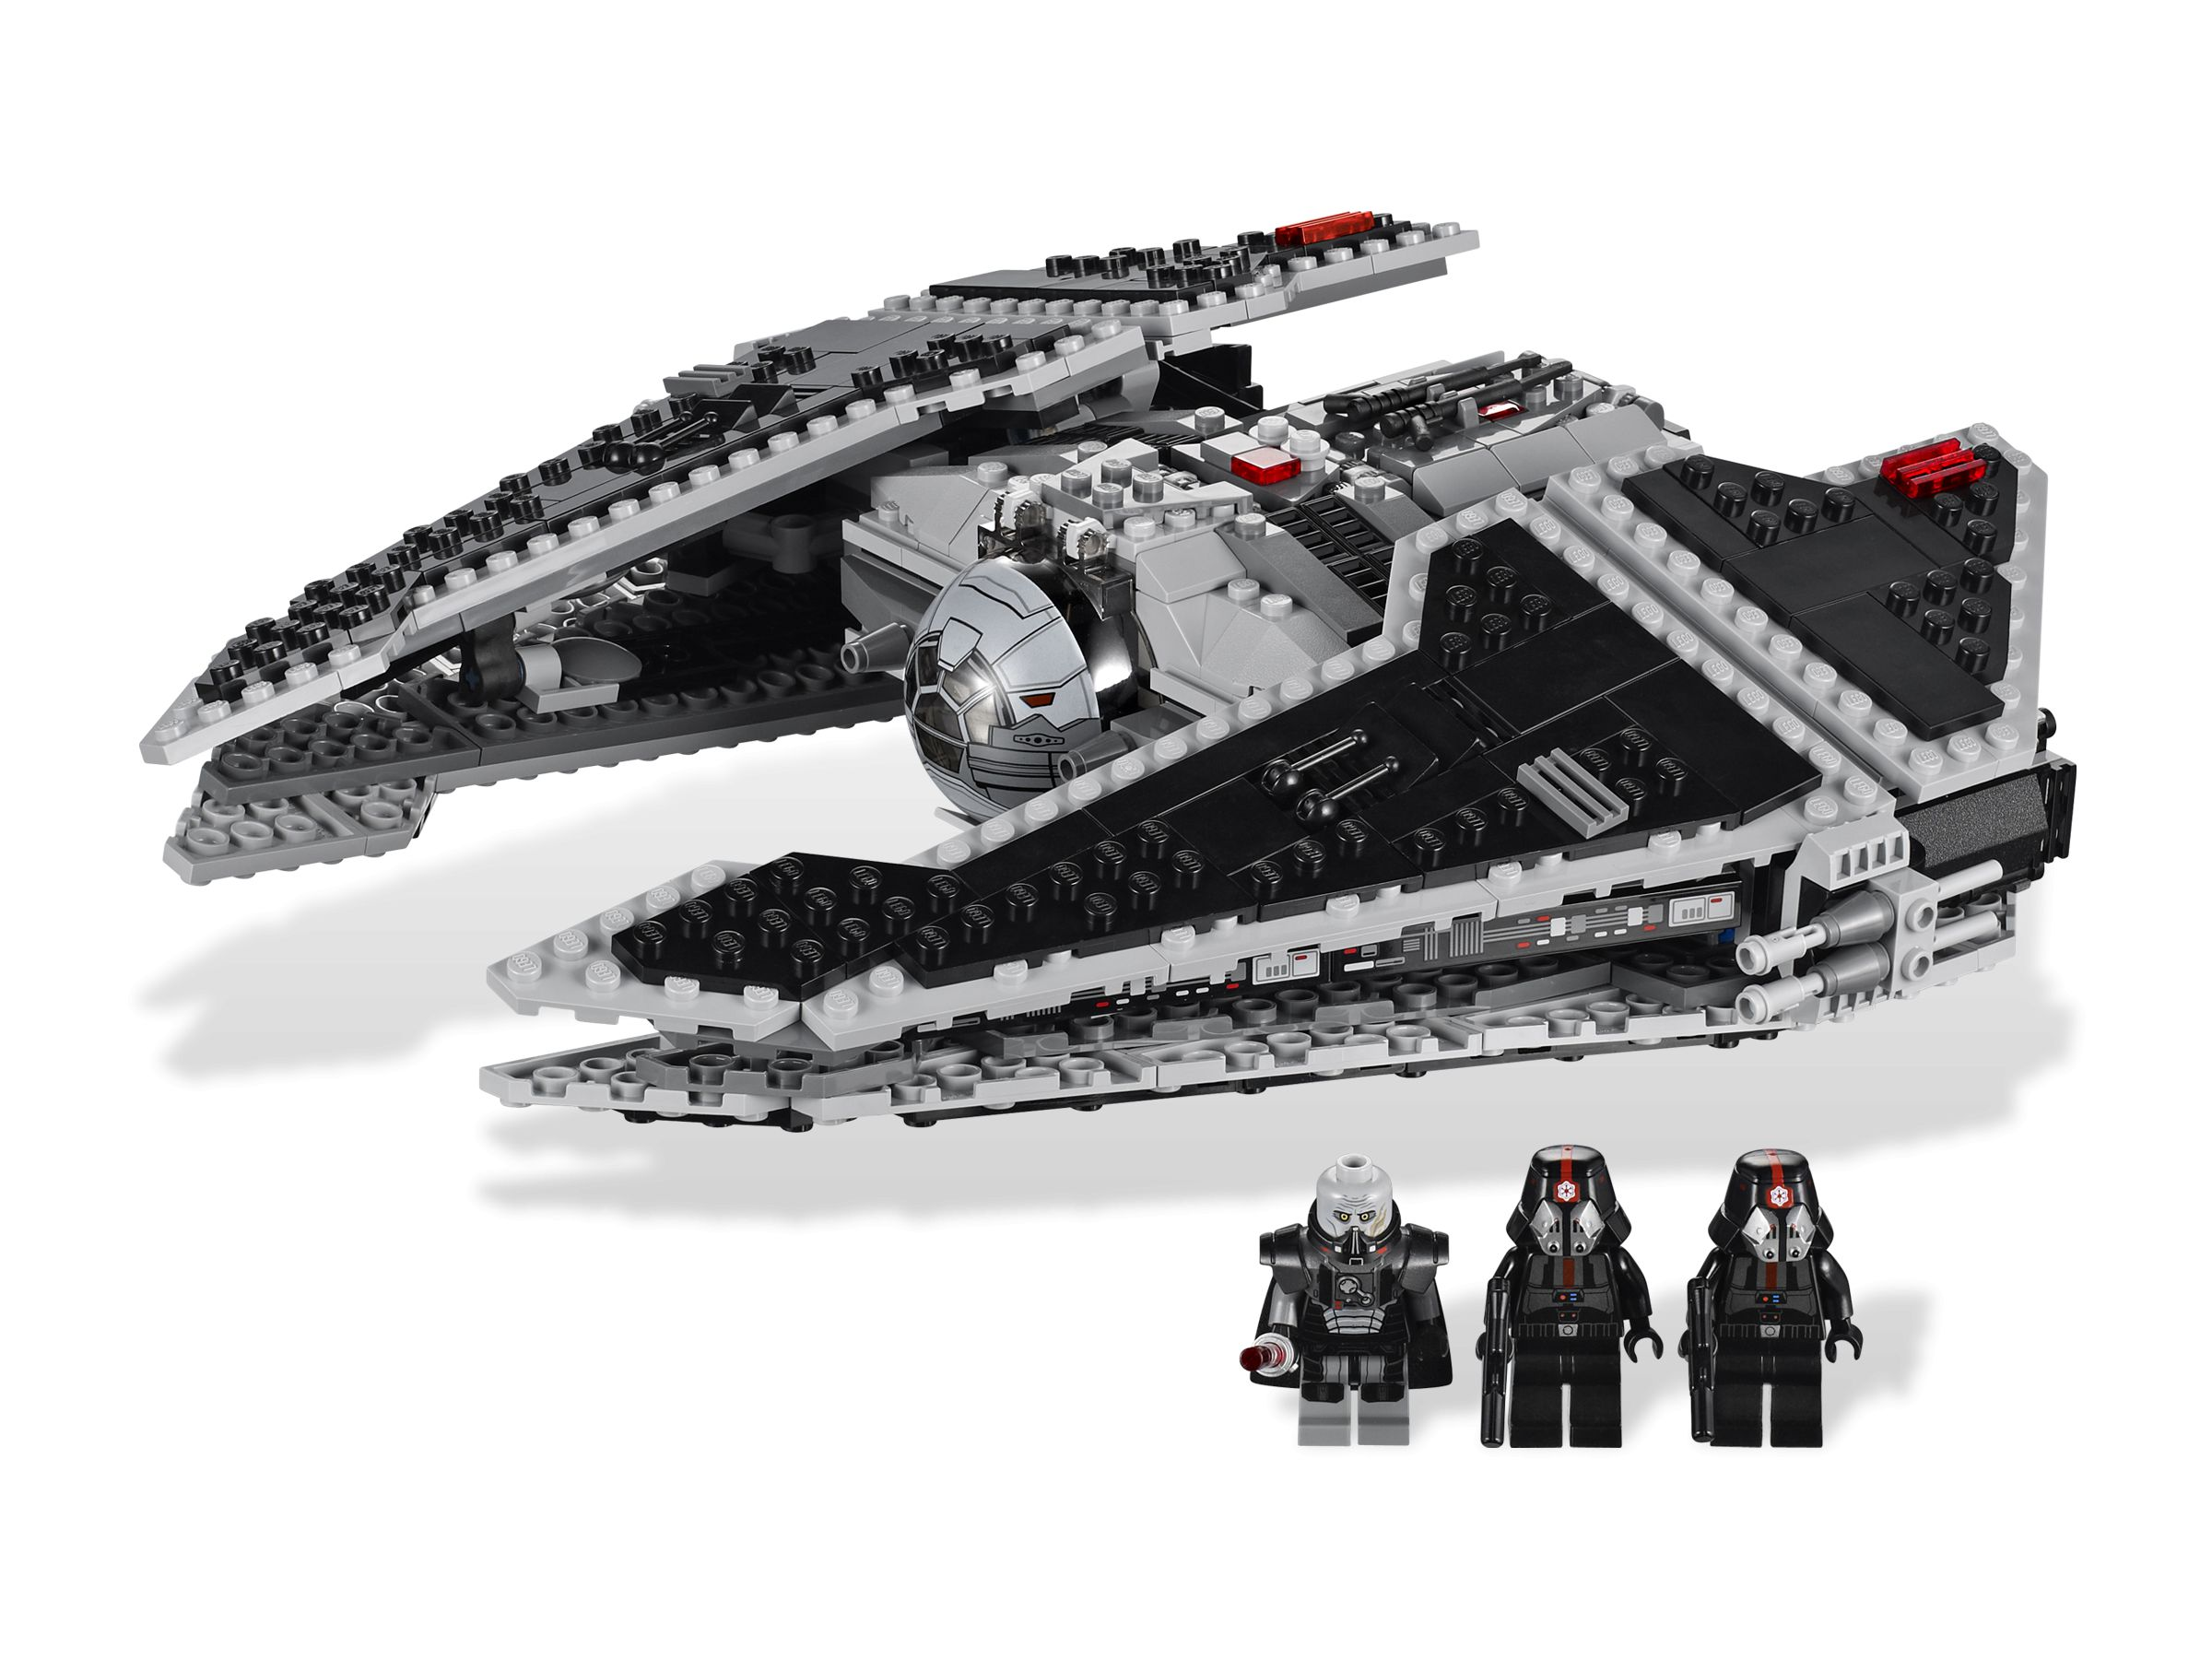 LEGO Star Wars 9500 Sith Fury - class Interceptor LEGO_9500.jpg